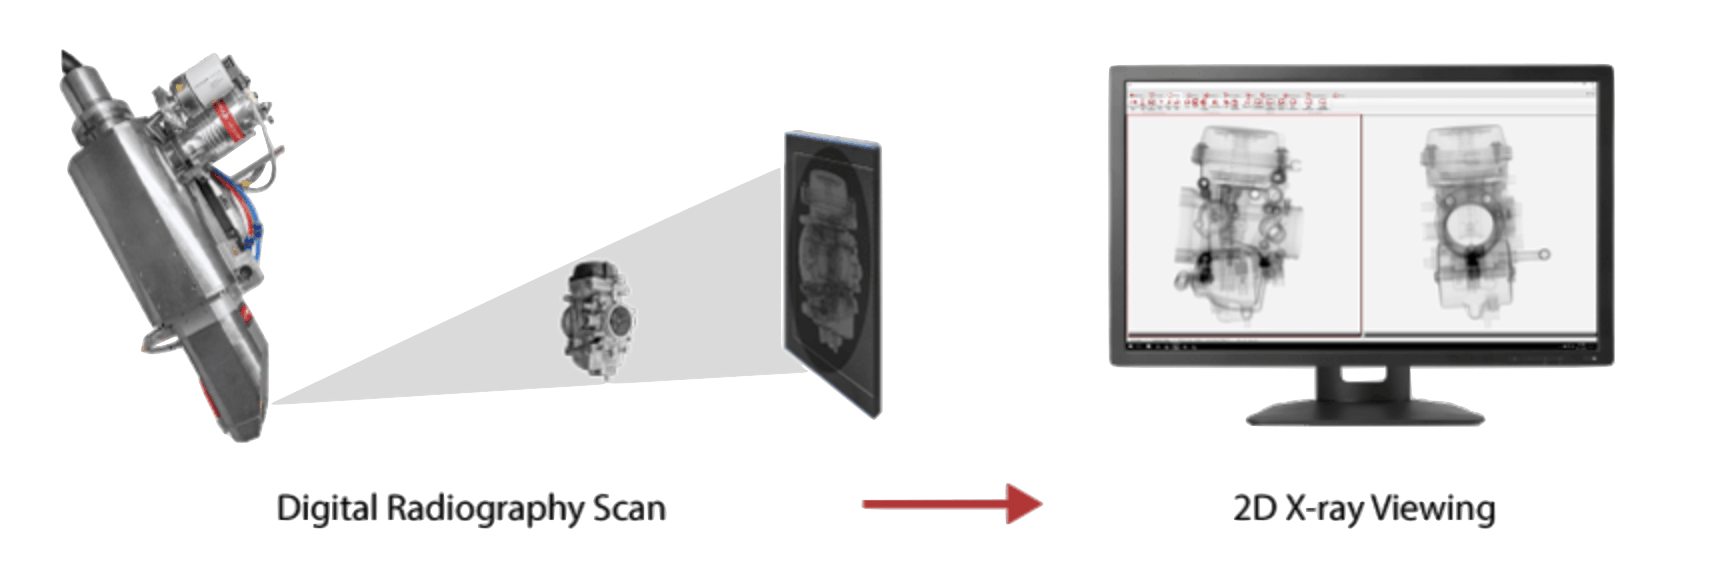 xray scanning of aviation components